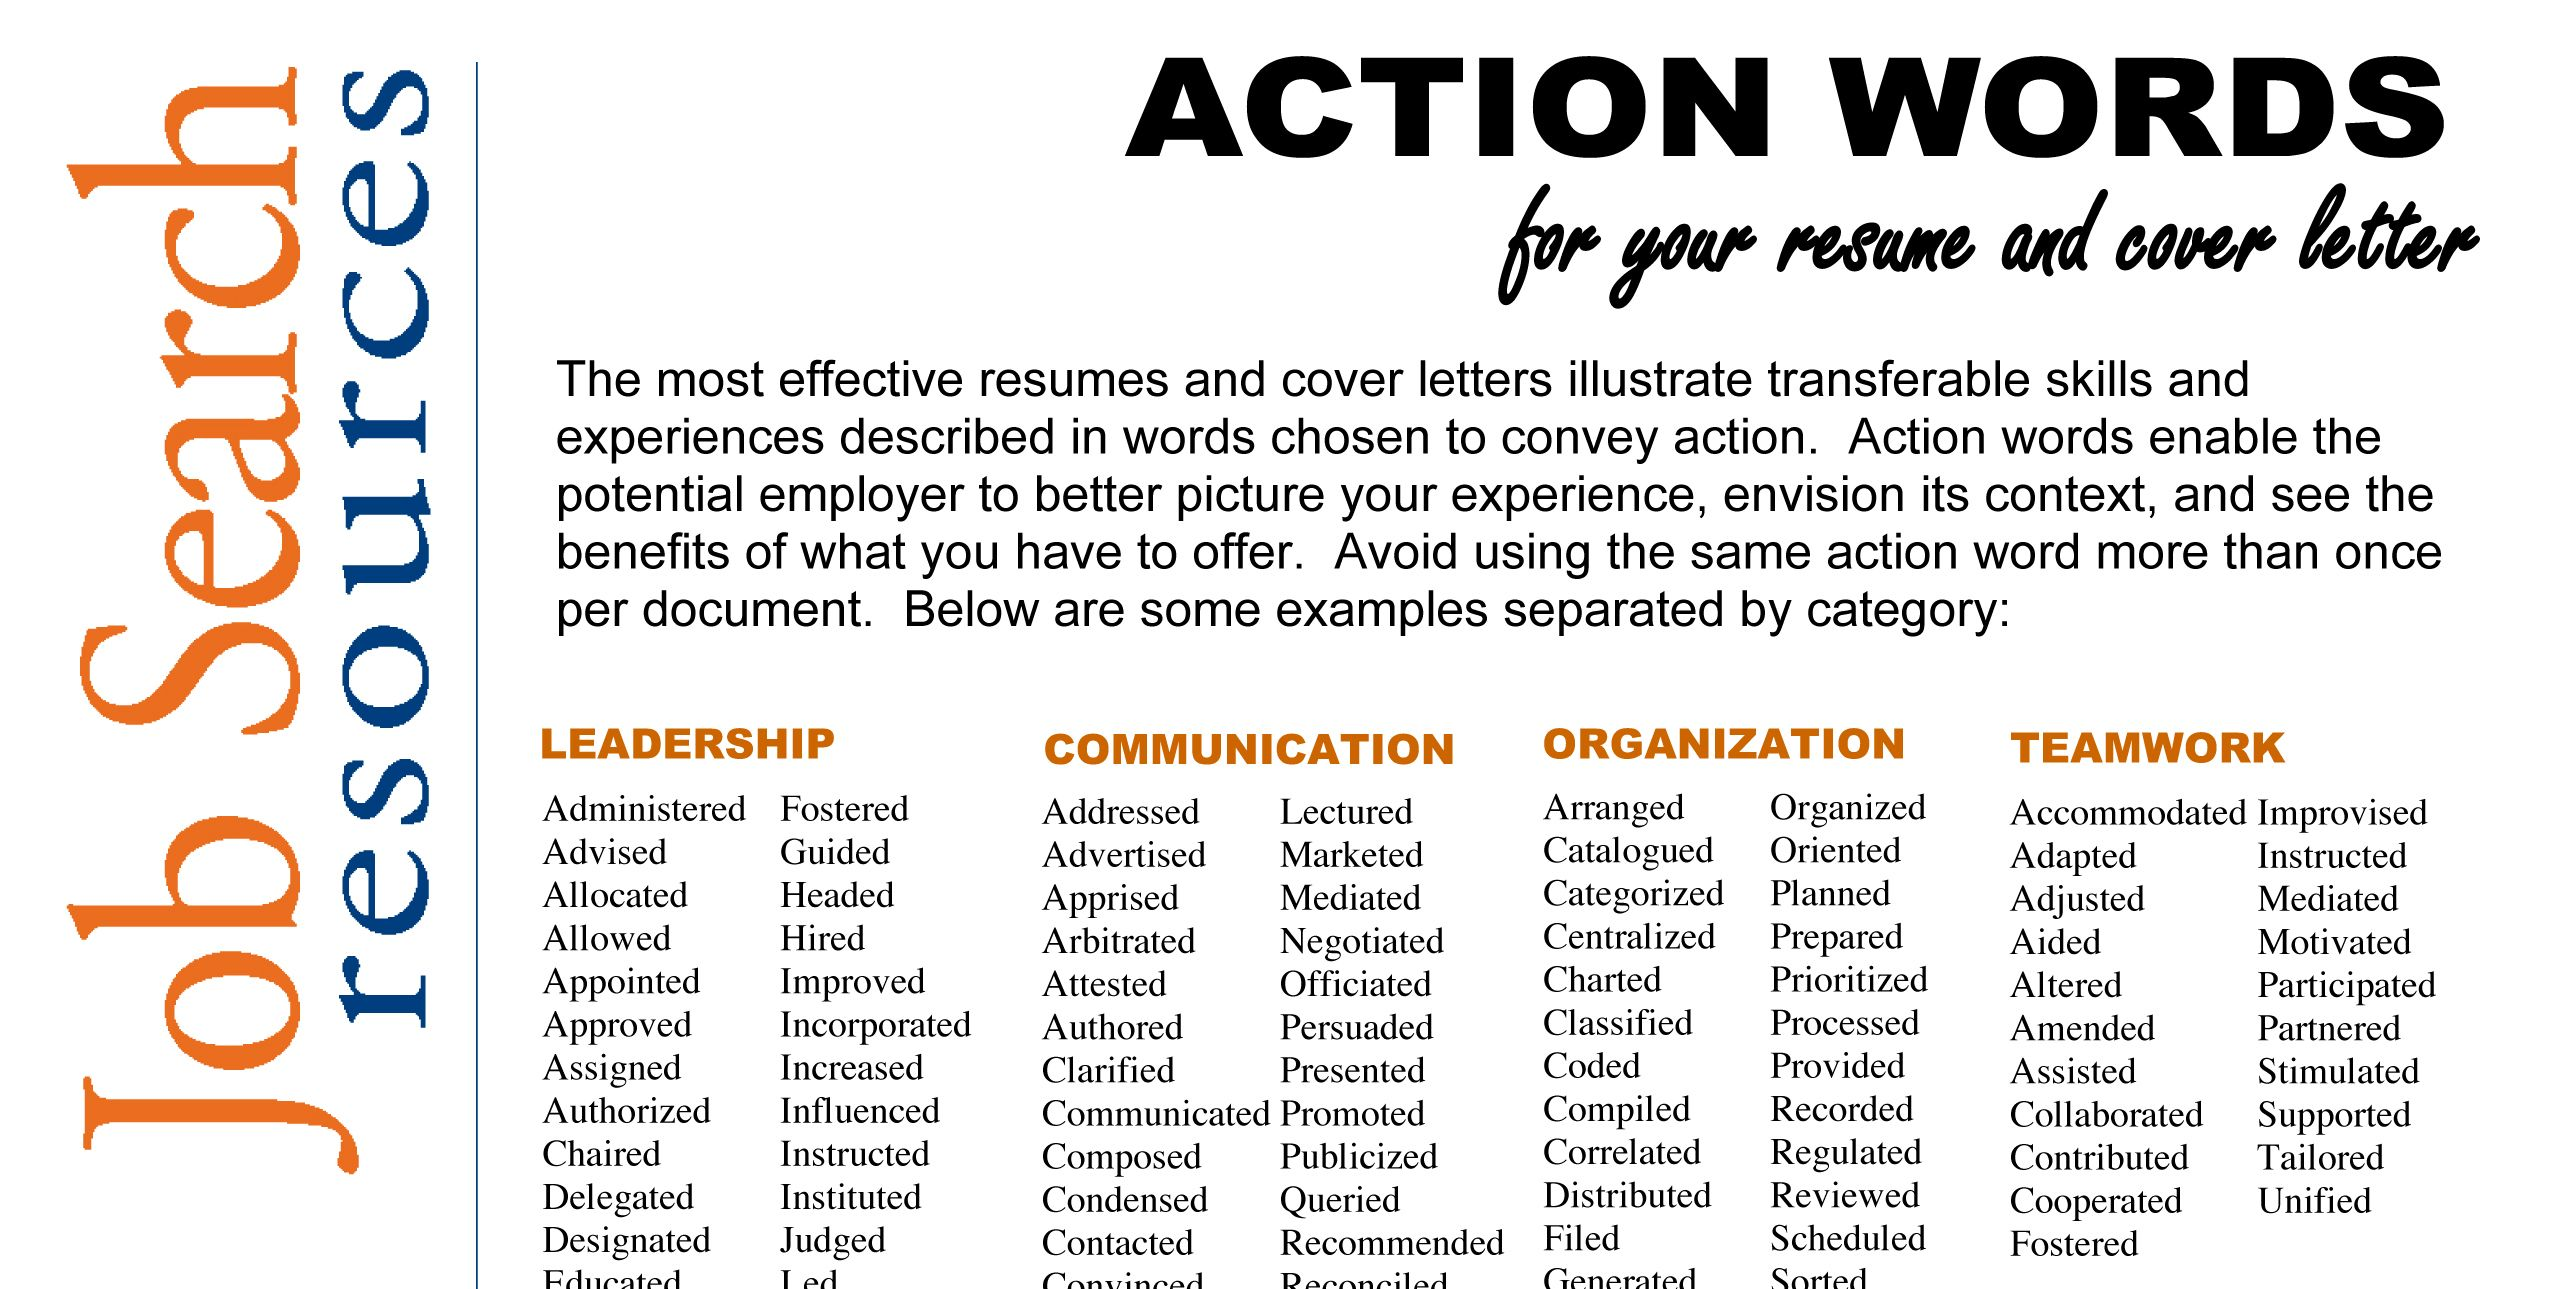 Are You Using Action Words For Your Resume? Hereu0027s A List Of Action Words  That  Action Verbs For Resume